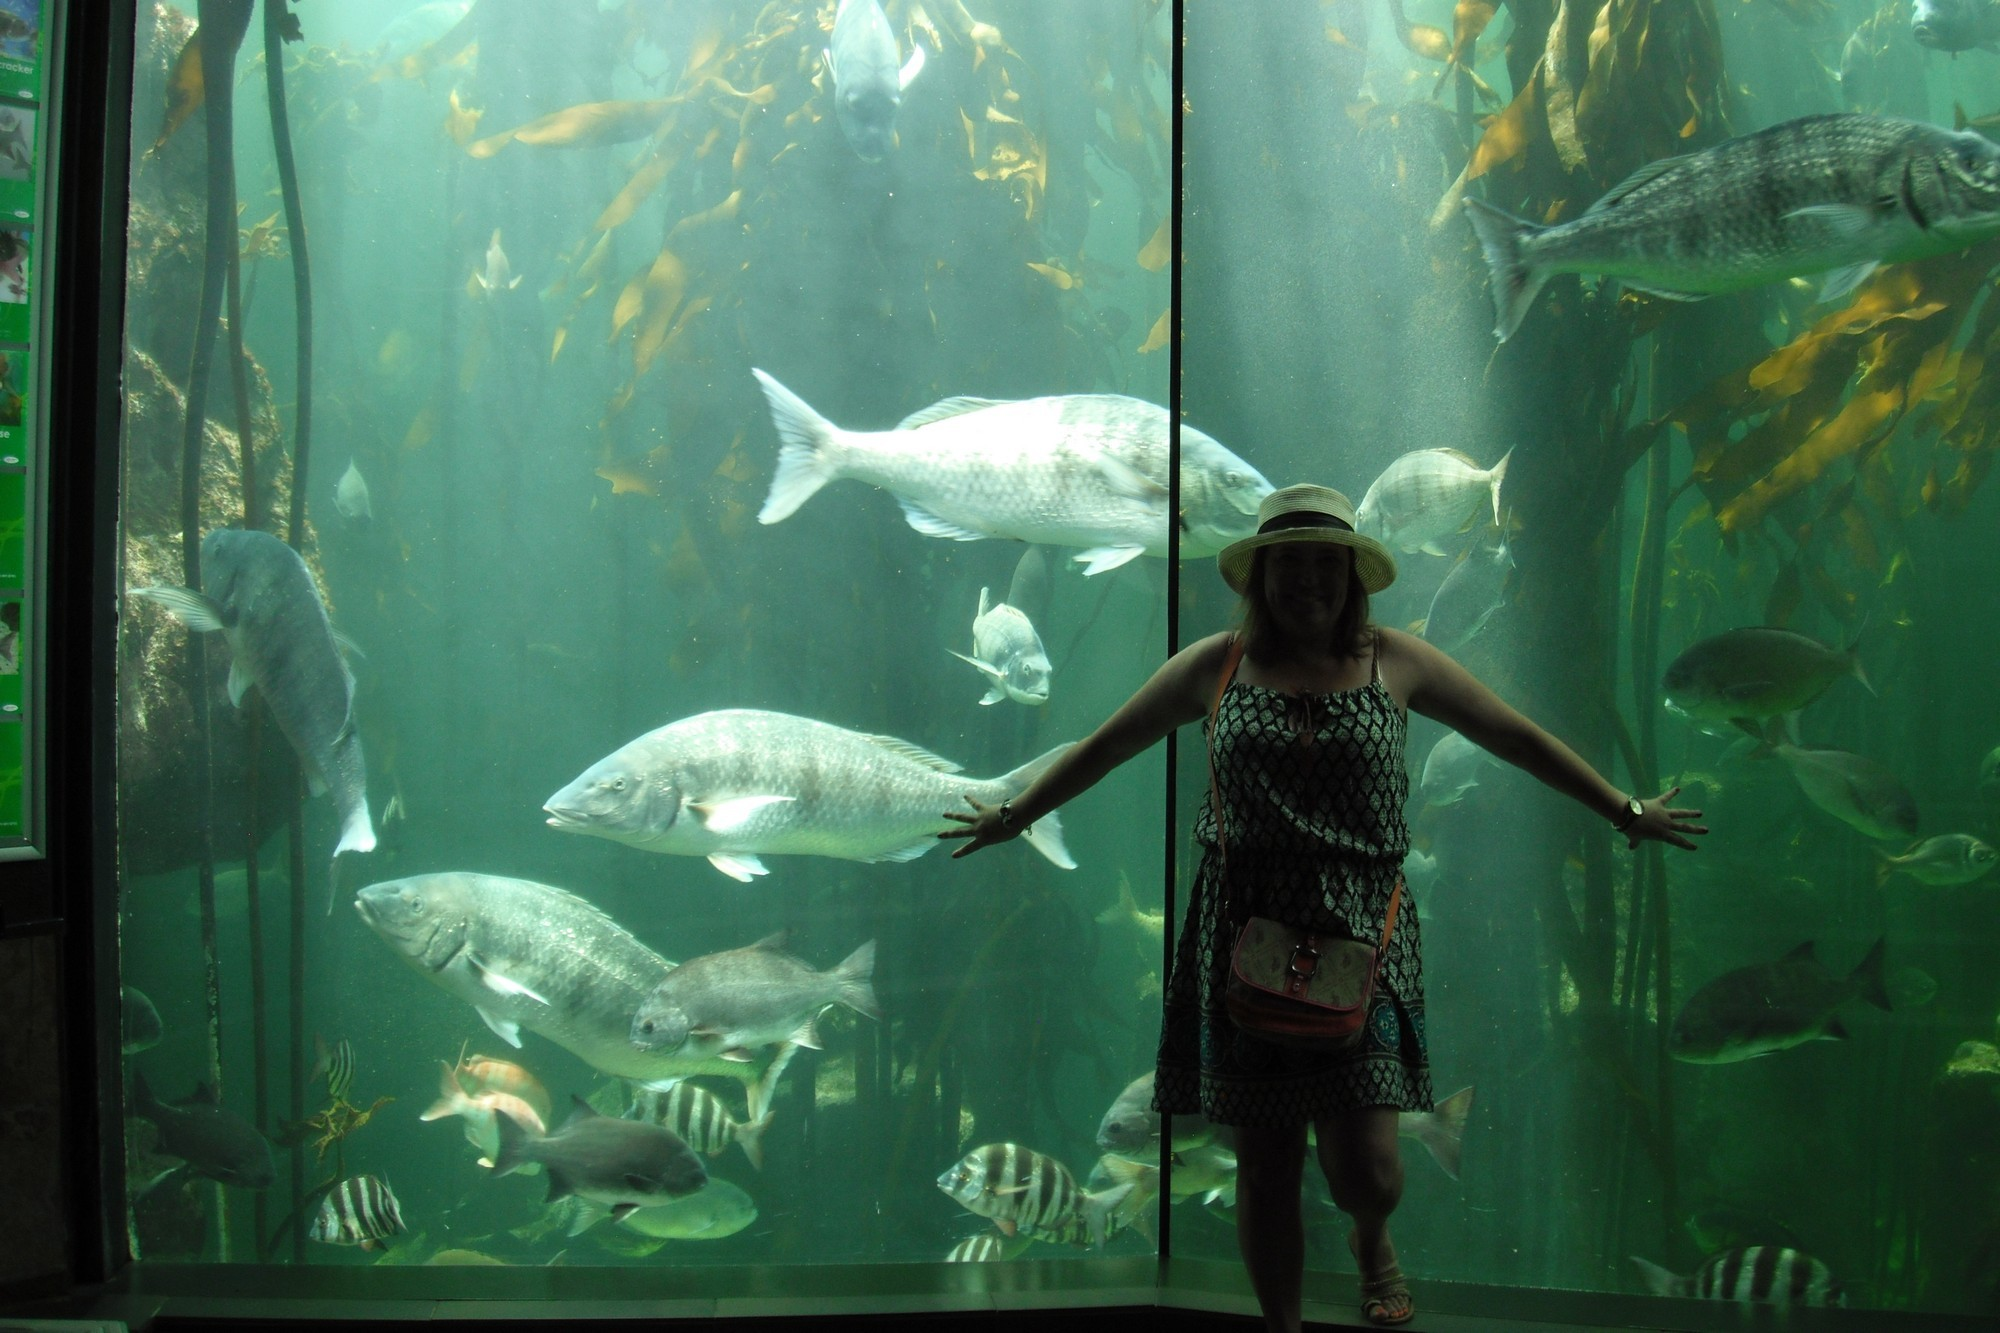 Freshwater aquarium fish cape town - Photo By Safari365 S Client Envada M From Brazil The Aquarium Is Superb To Visit Especially With Children